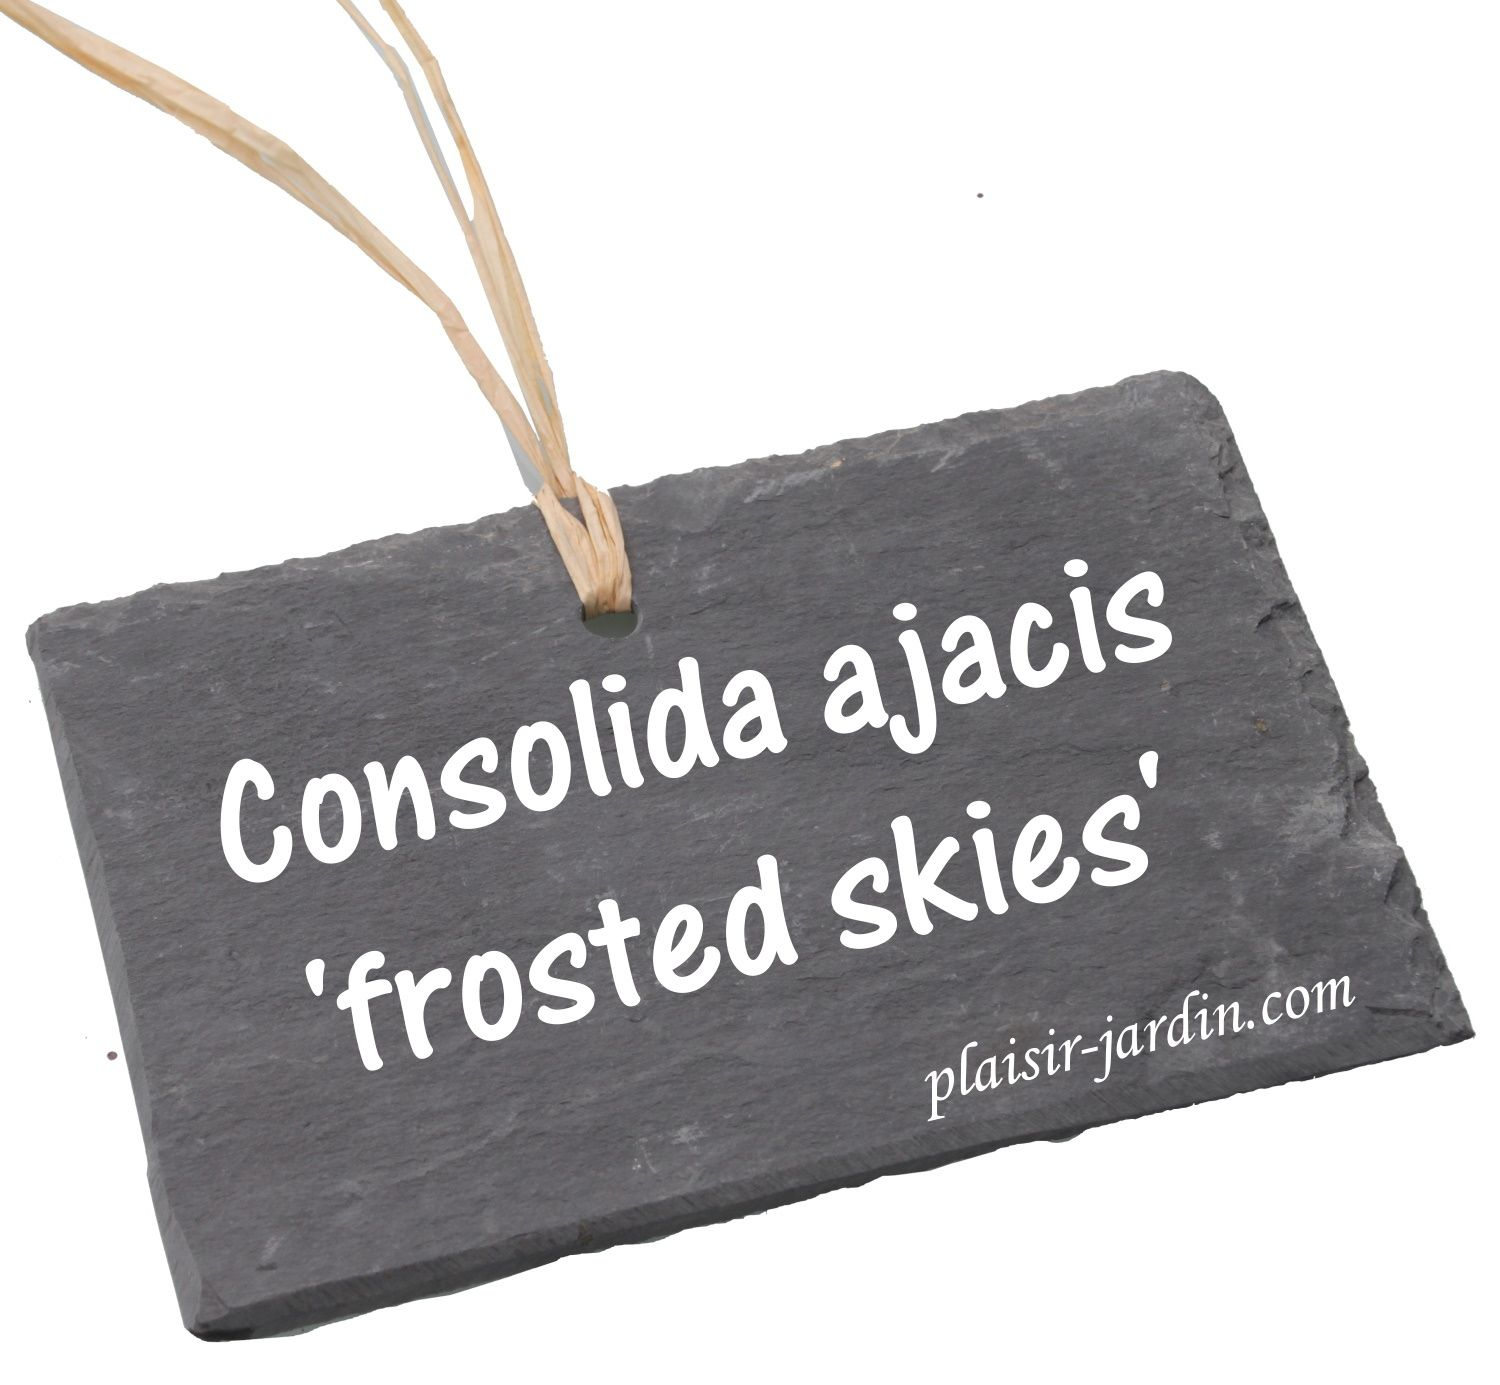 Le Consolida ajacis 'frosted skies'